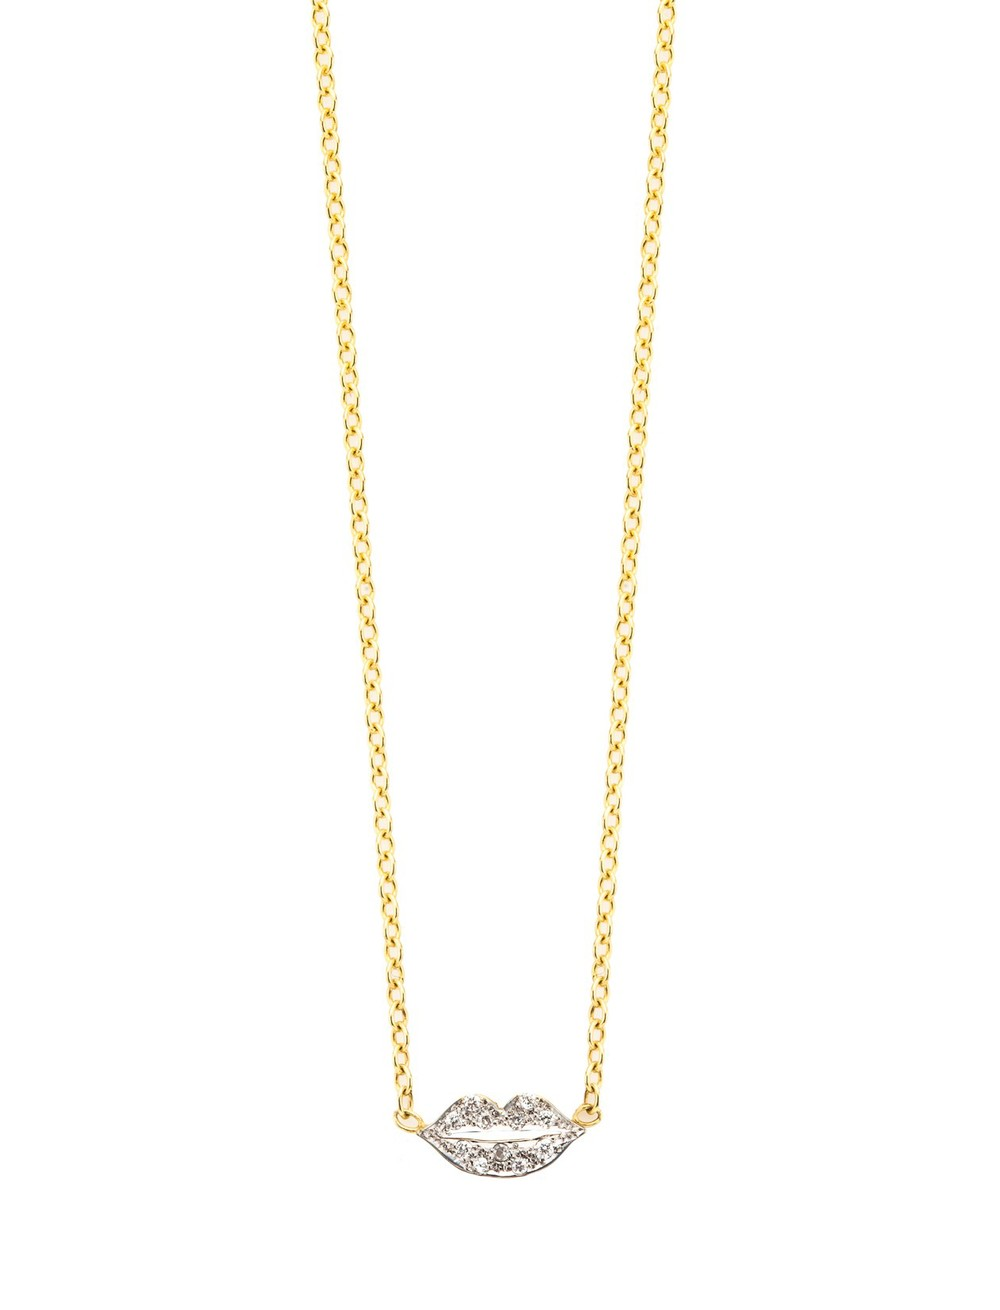 Kacey K lips necklace with   white pave diamonds, $450